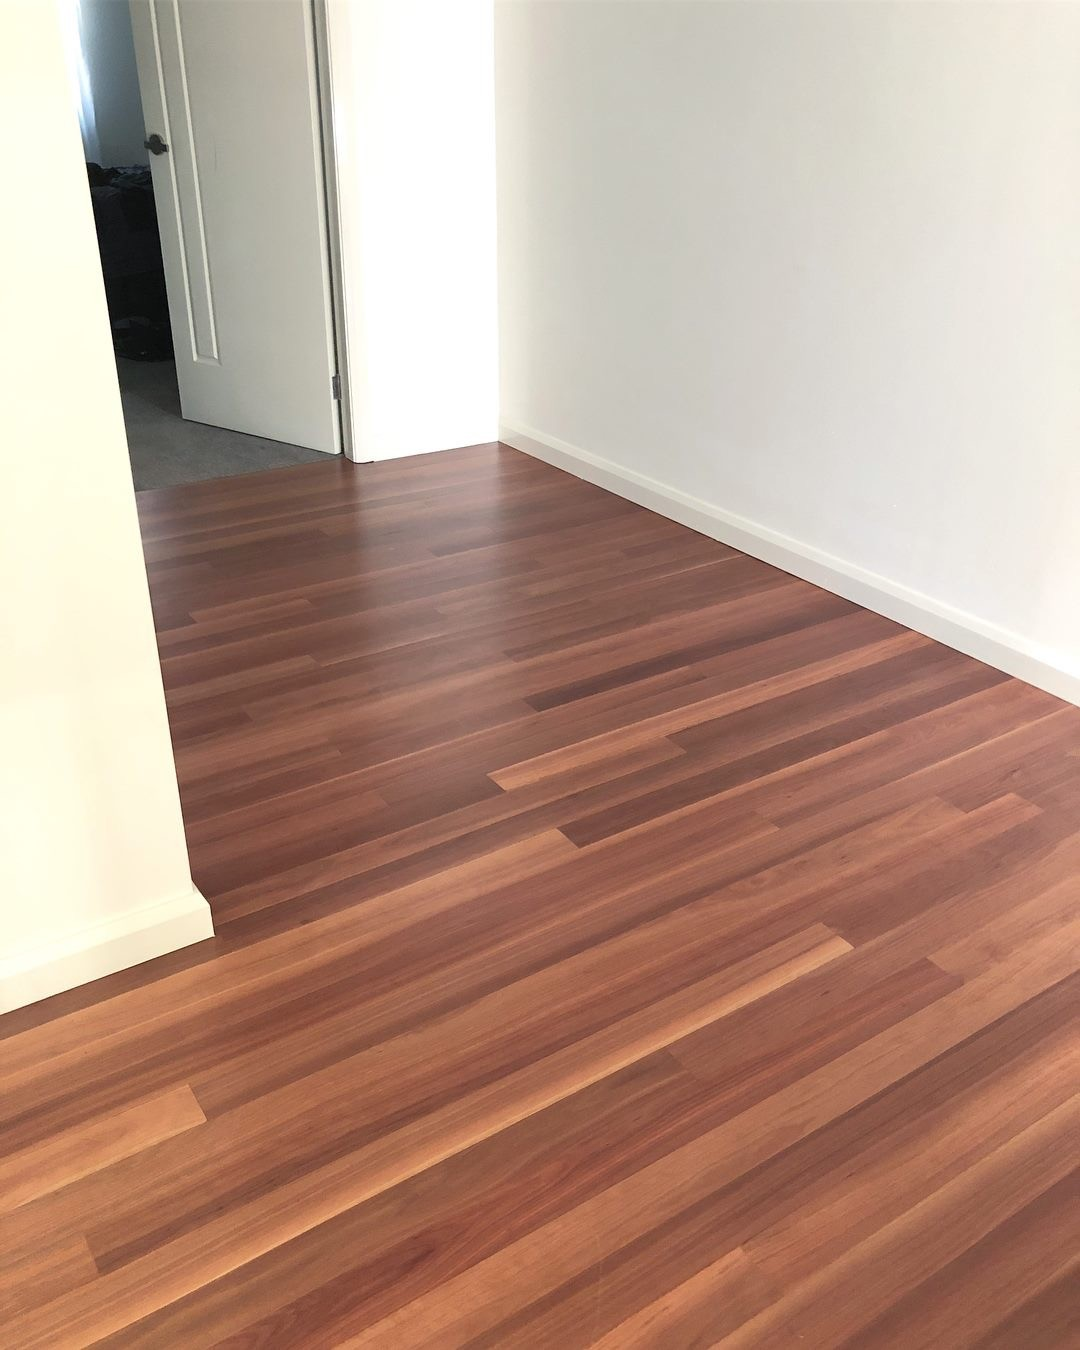 Turpentine timber flooring supplied and installed by Timber Floors Pty Ltd